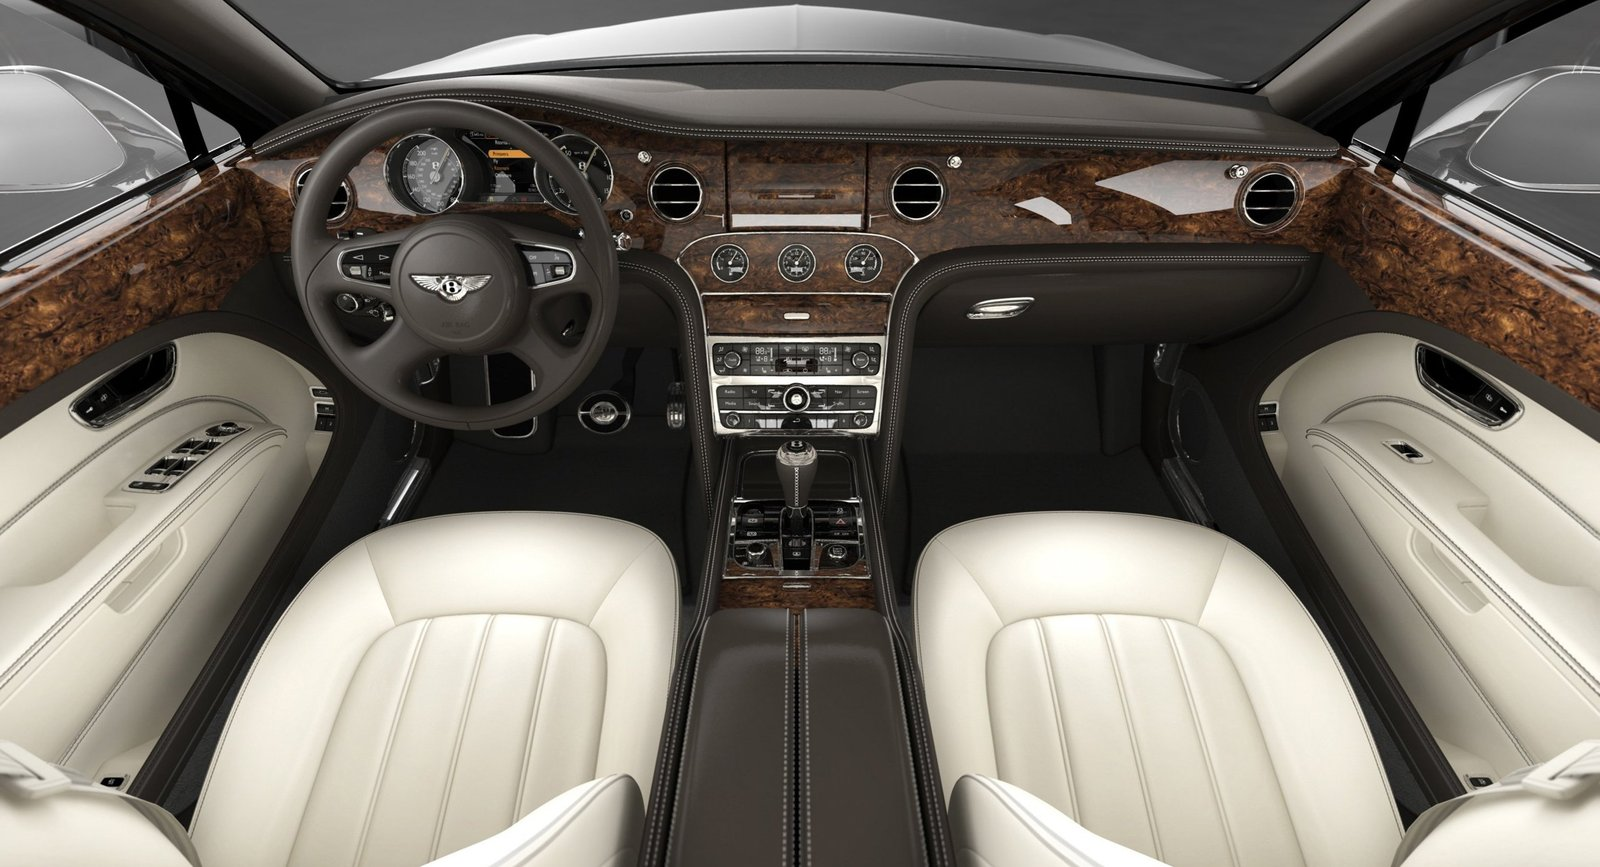 Mercedes Of Denver >> 2011 Bentley Mulsanne Review, Ratings, Specs, Prices, and Photos - The Car Connection